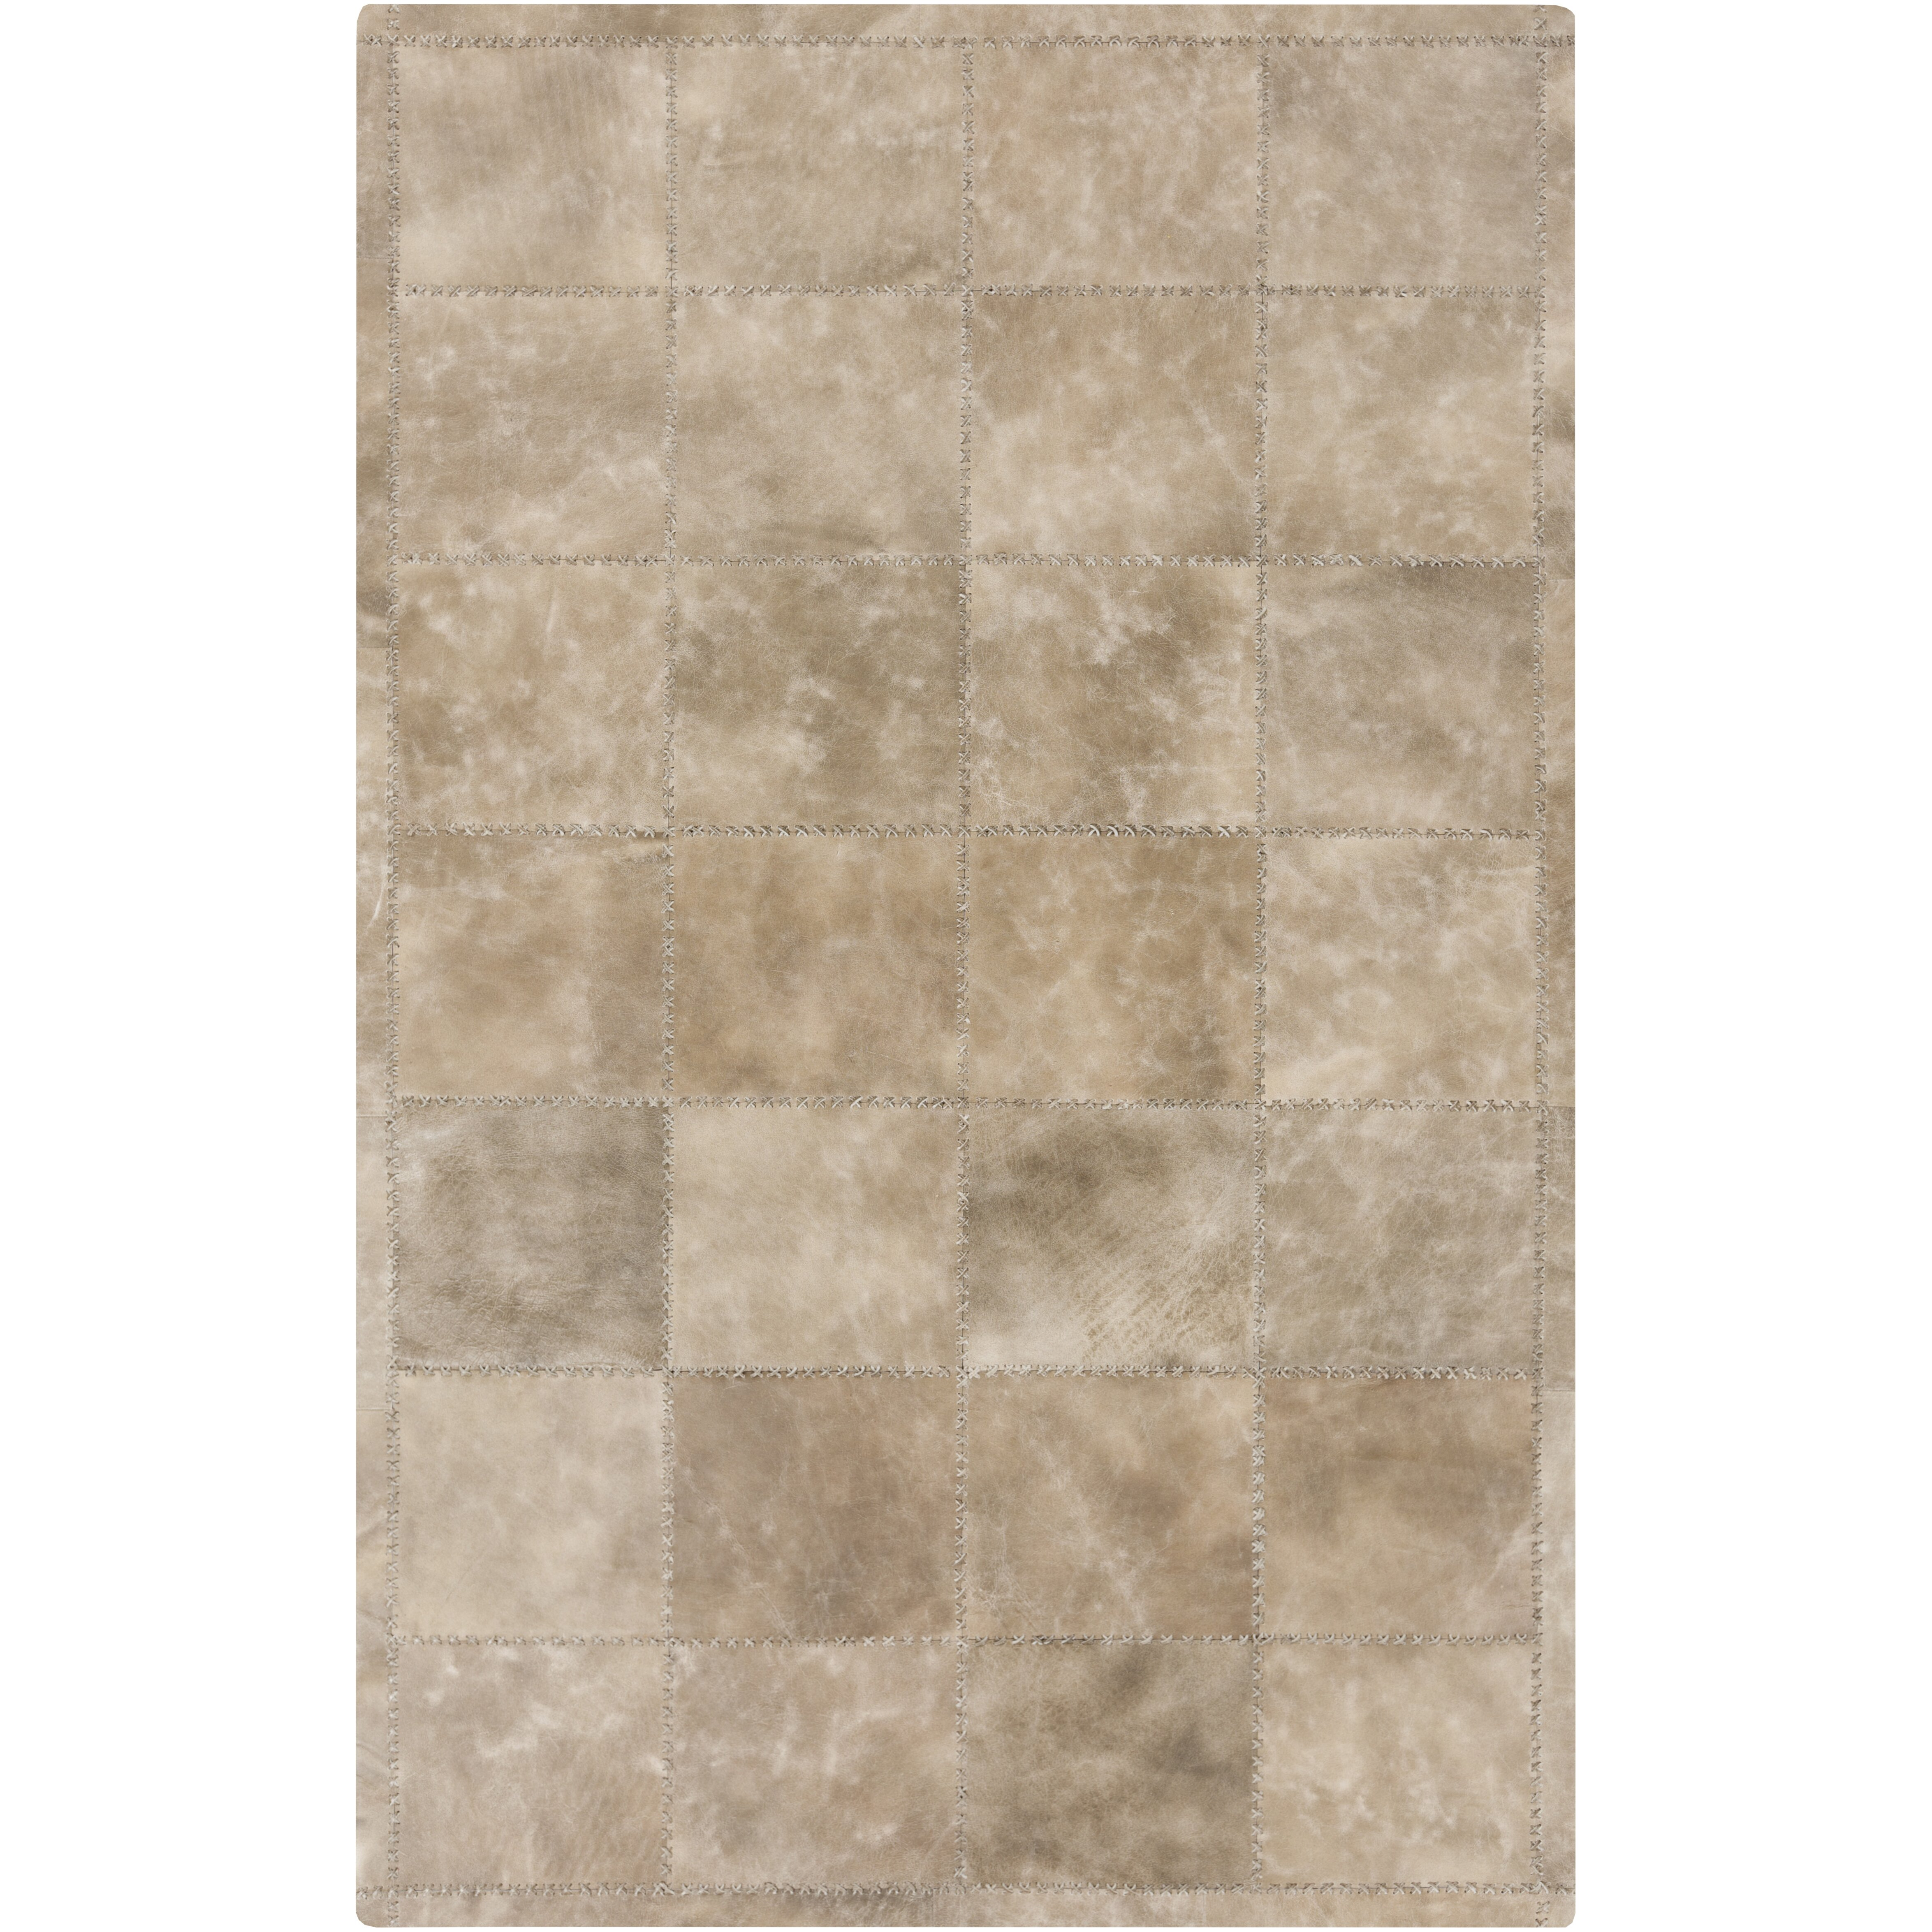 Gray Taupe And White Bedroom Curatins: Surya Saddle Light Gray/Taupe Area Rug & Reviews